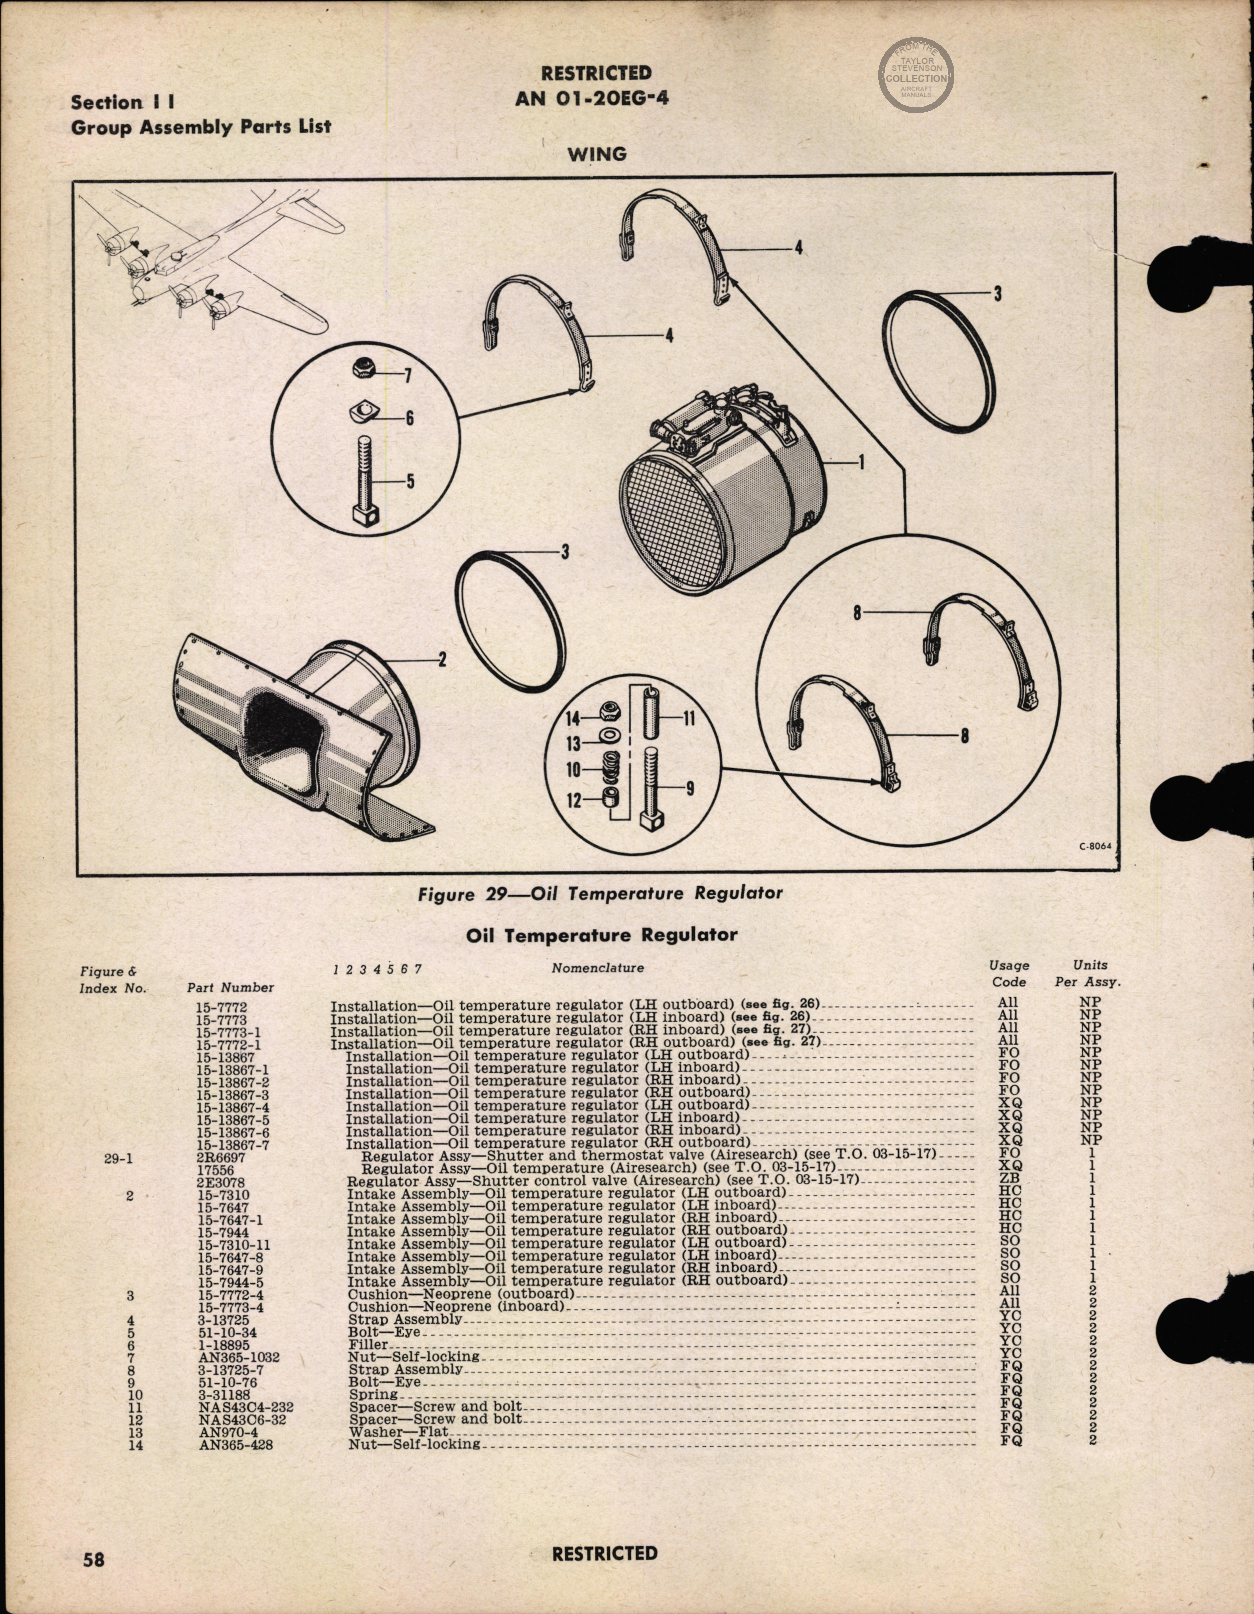 Sample page 62 from AirCorps Library document: Parts Catalog - B-17